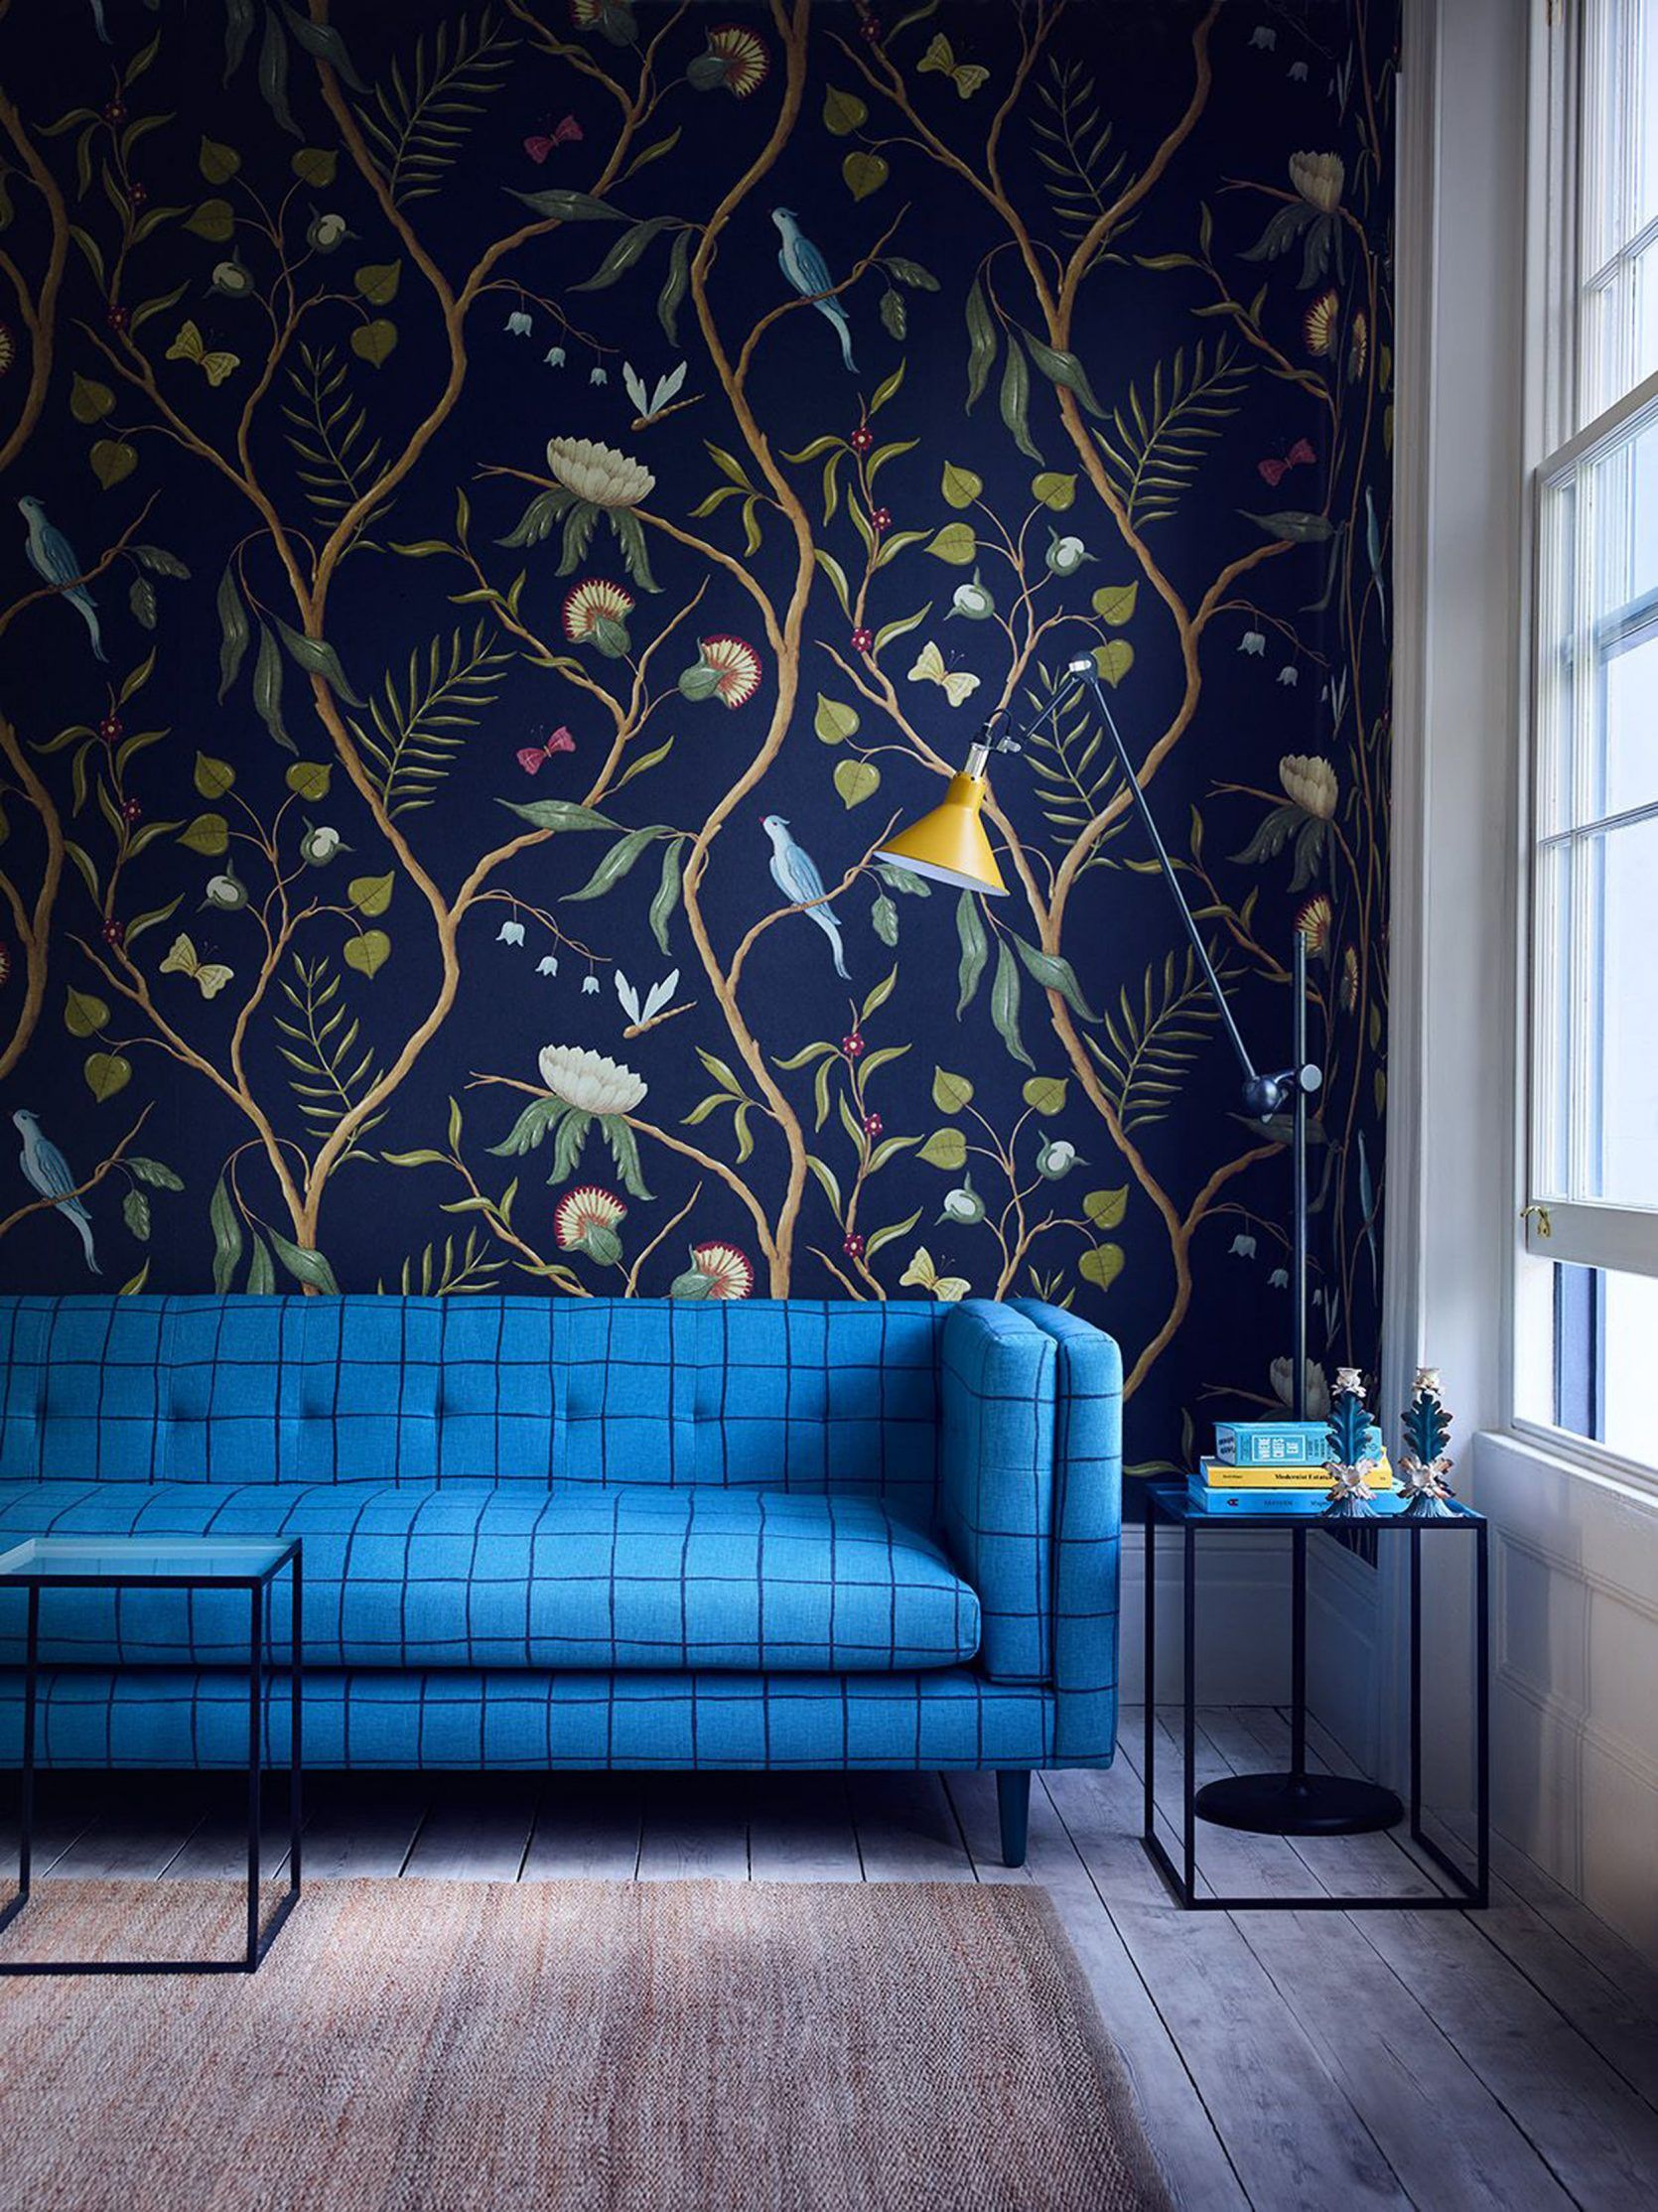 2018 Design Trends Chinoiserie Is Making A Comeback Wallp